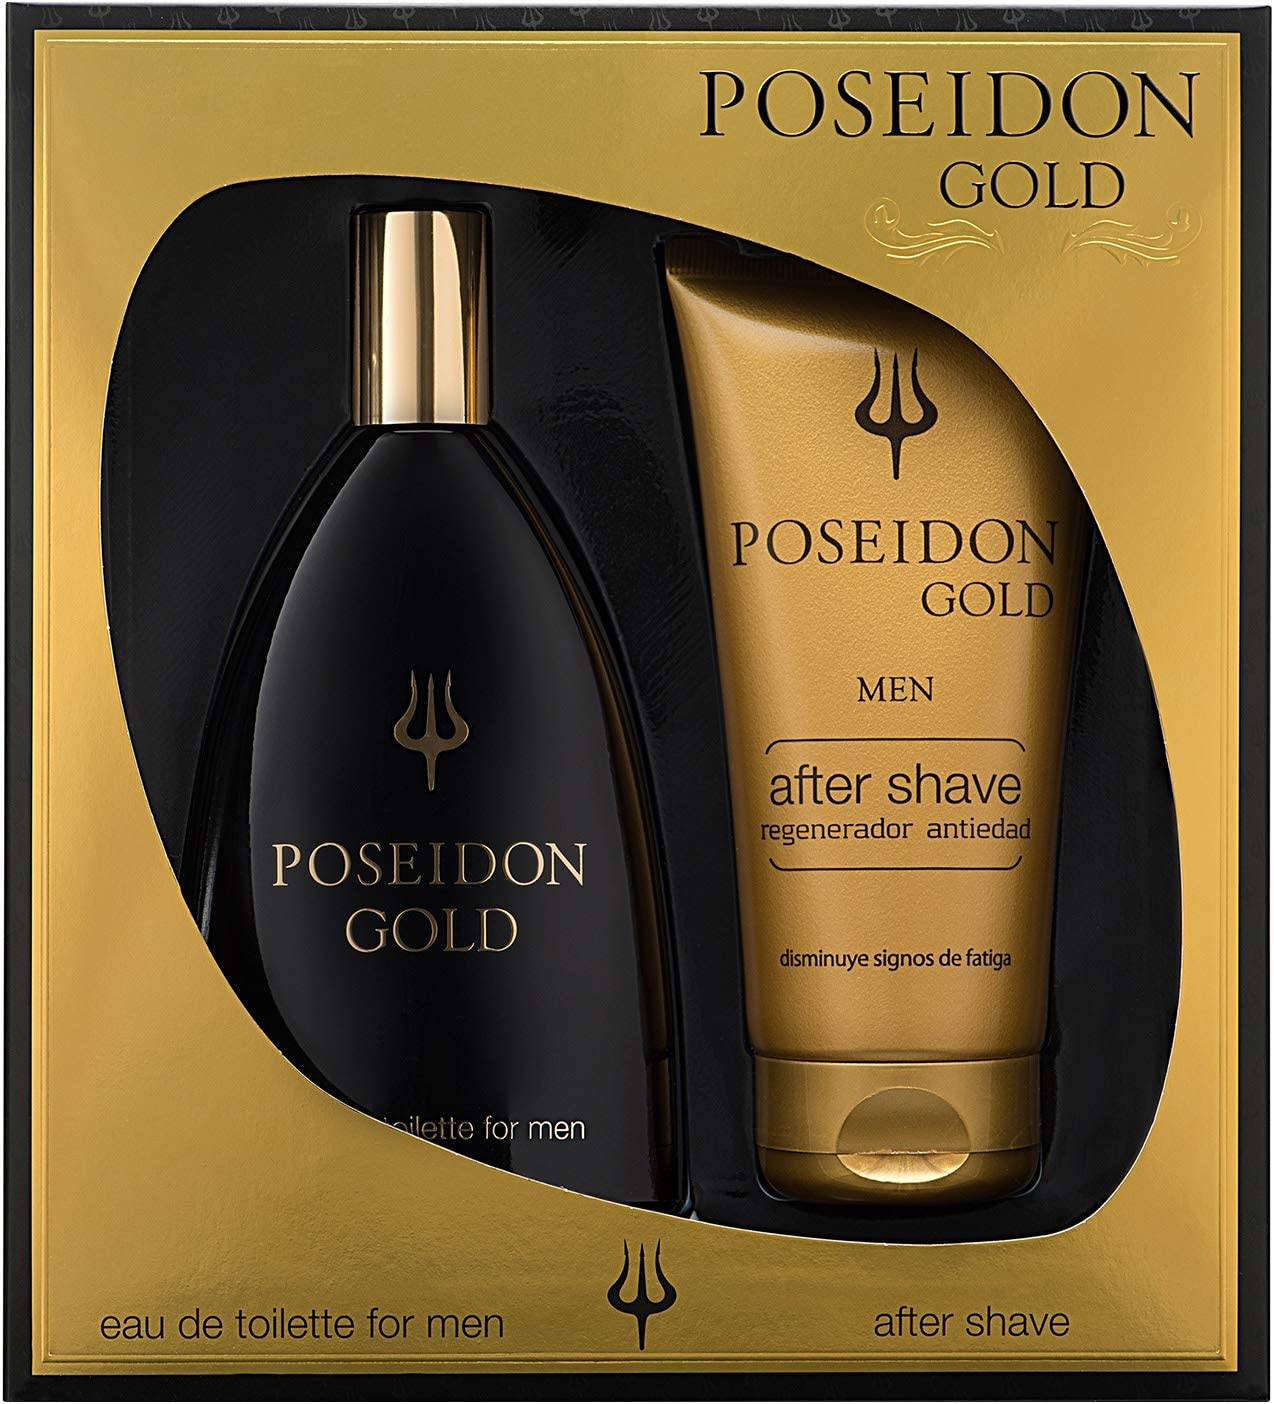 Poseidon Gold Eau de Toilette para Hombre - Set Colonia 150 ML y After Shave